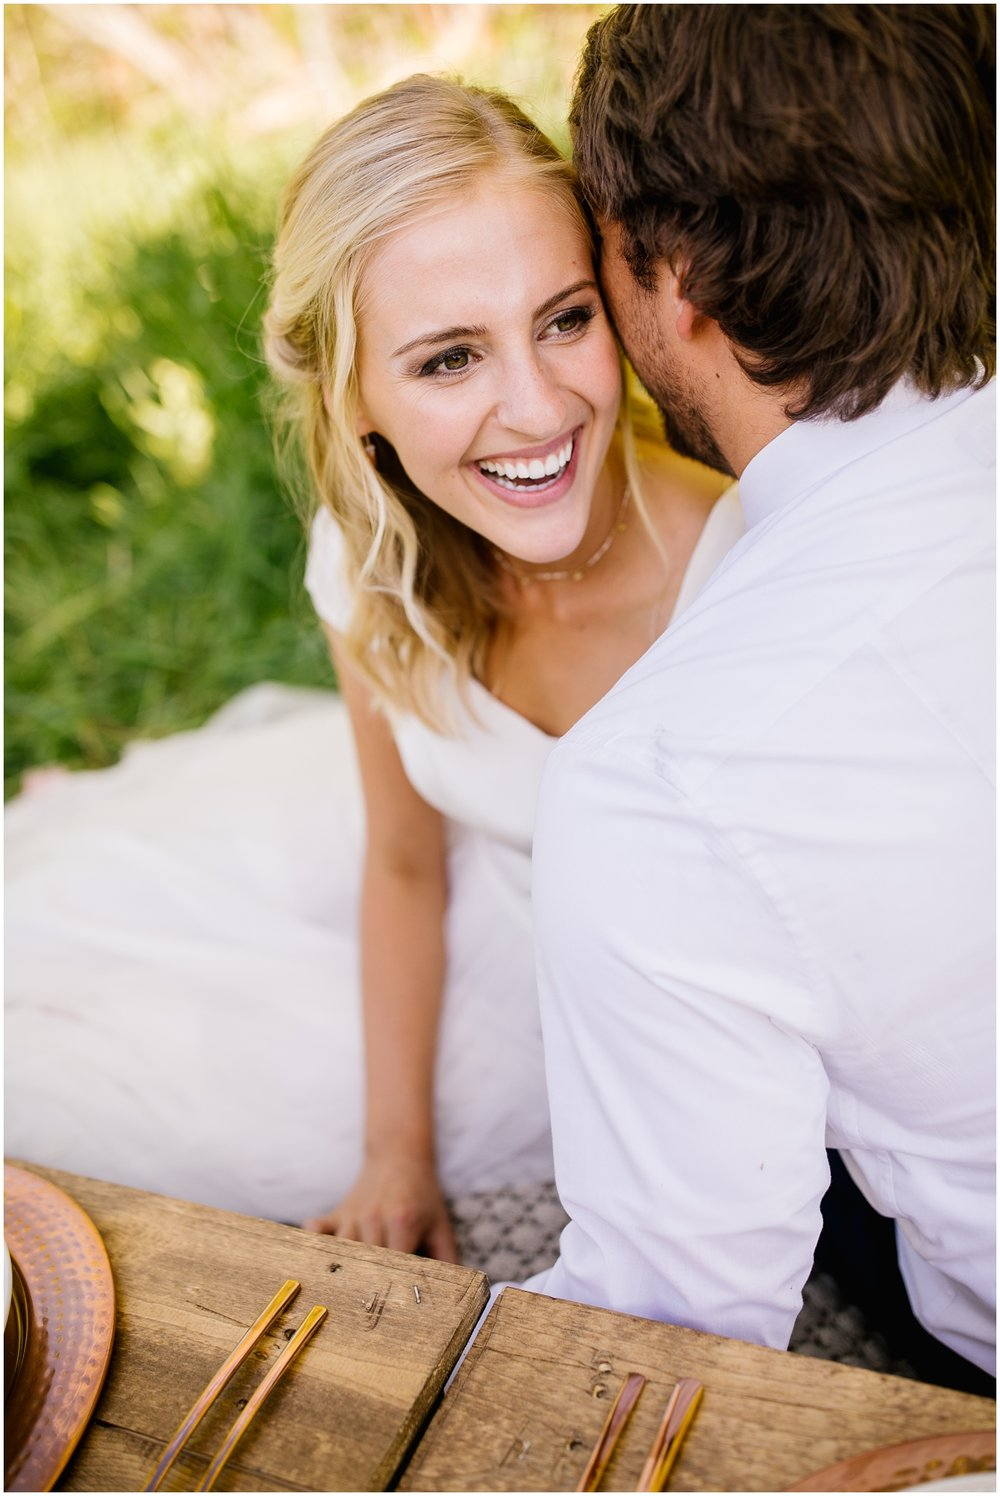 LakeShoot-31_Lizzie-B-Imagery-Utah-Wedding-Photographer-Salt-Lake-City-Park-City-Oakley.jpg